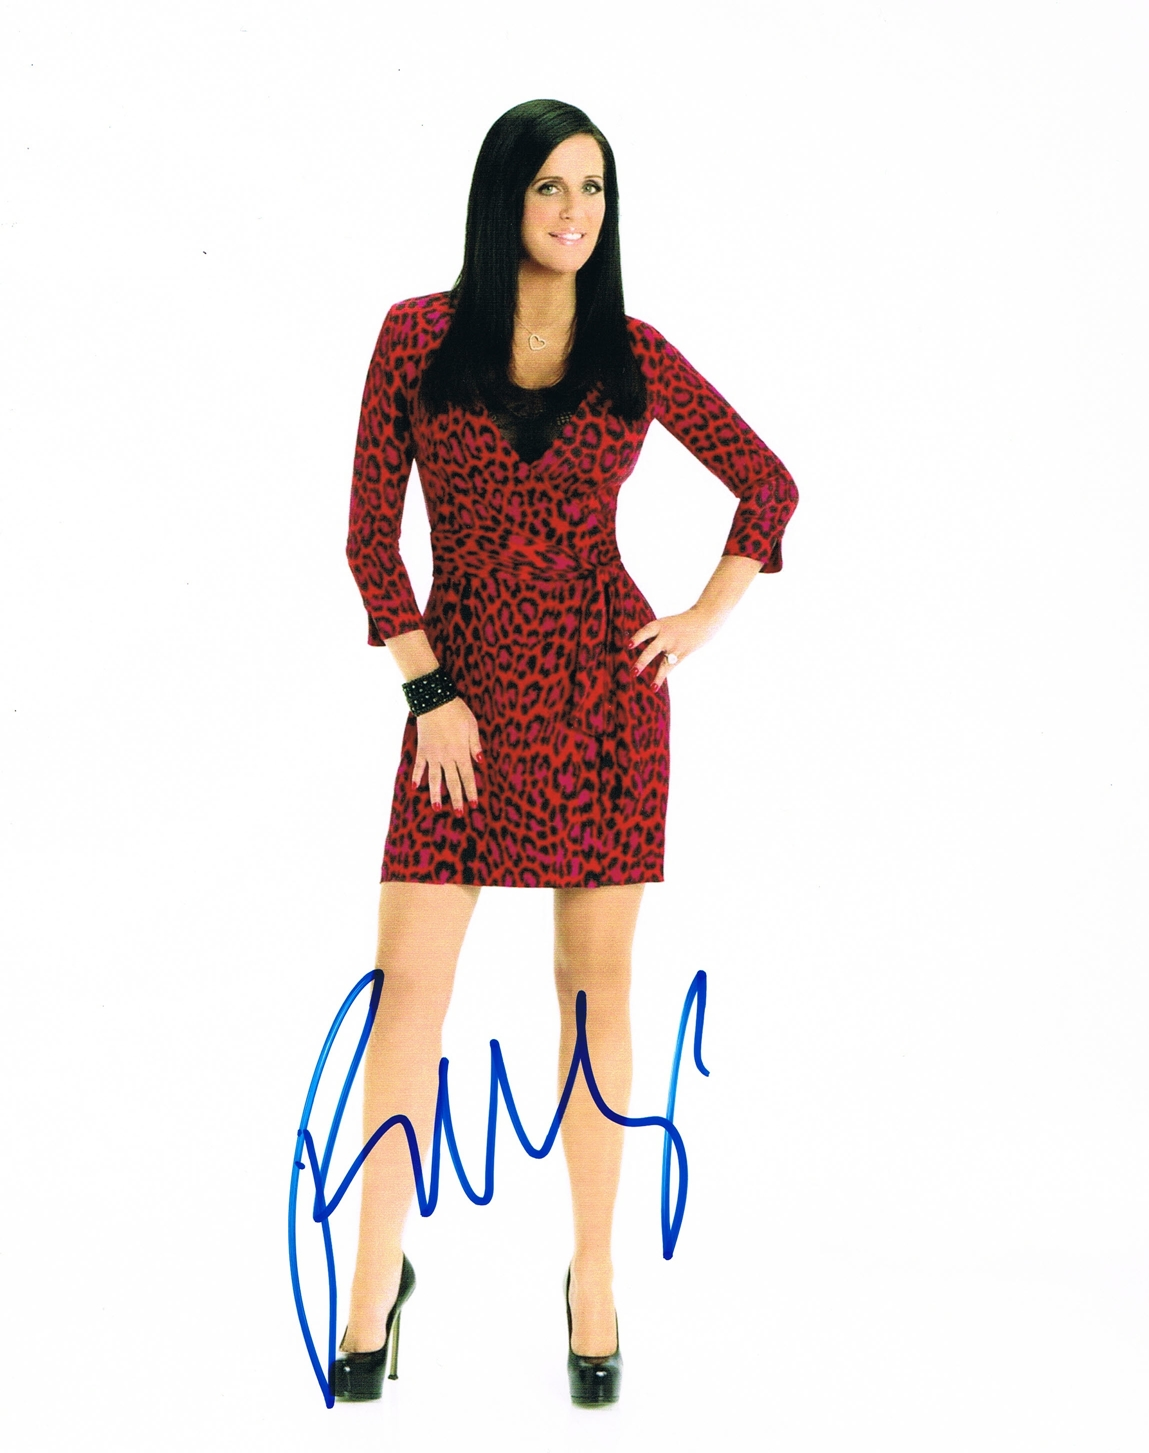 Patti Stanger Signed Photo